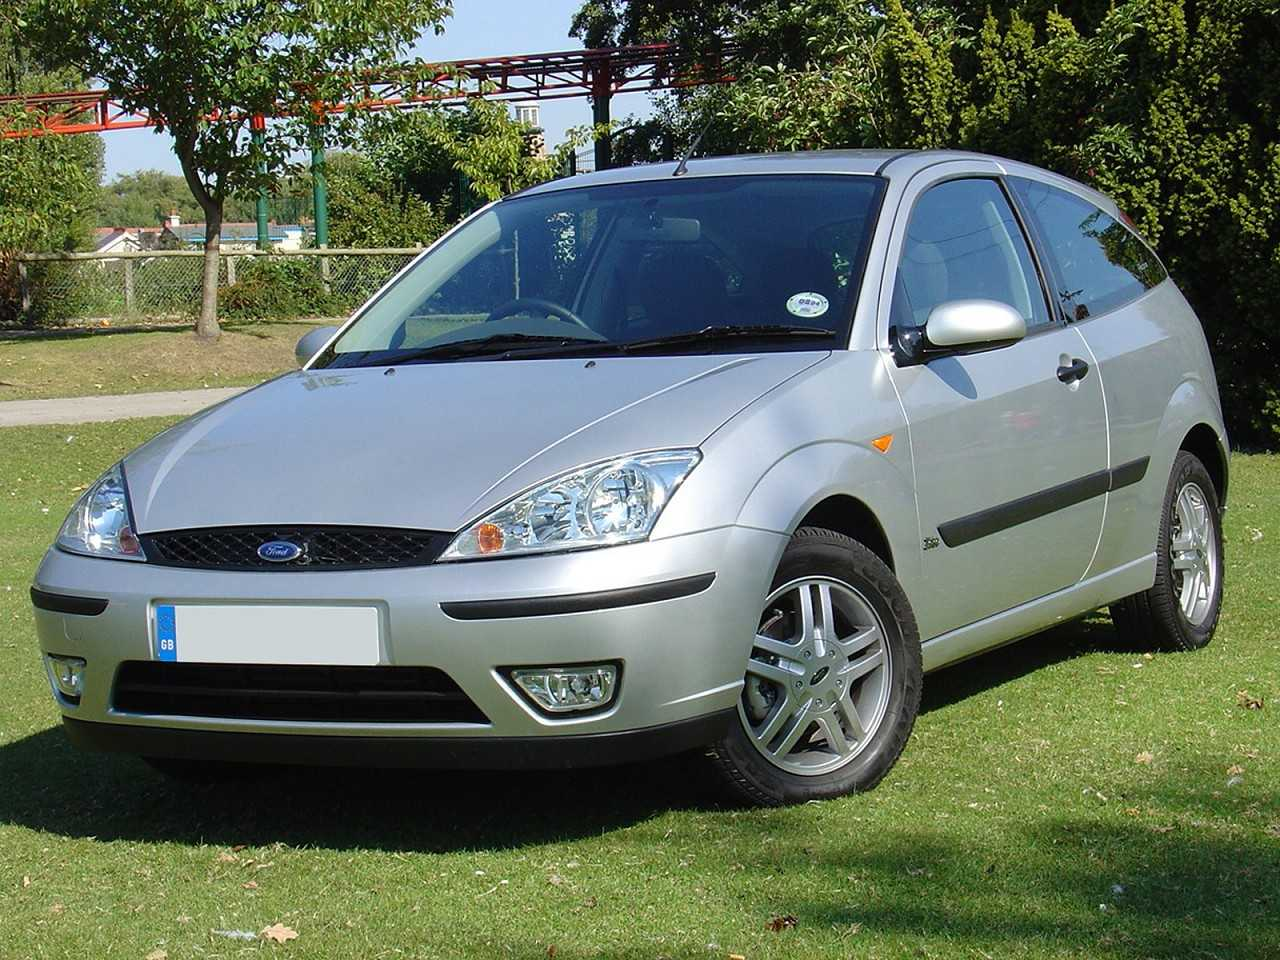 Ford Focus 2005 - ângulo frontal